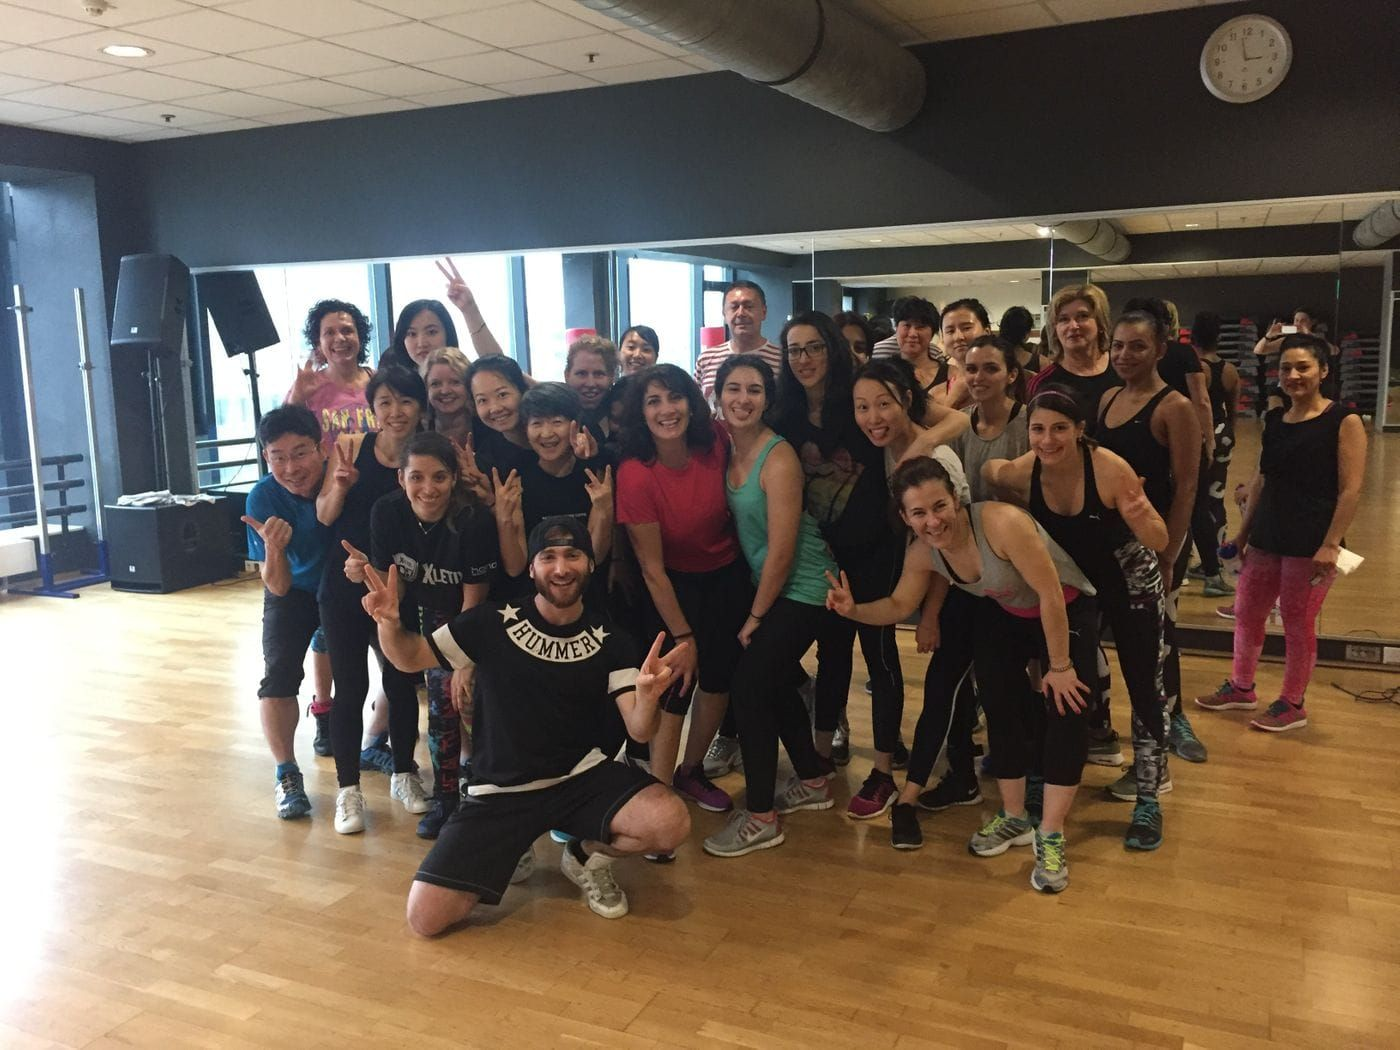 Ready for the weekend ? lets wakeup together tomorrow with some Commercial music and a big smile and lot of energy :) i wait you for my next class! feel free to ask for more info or join me :) here >> https://bua.fit/class/4684iSf8TPyY